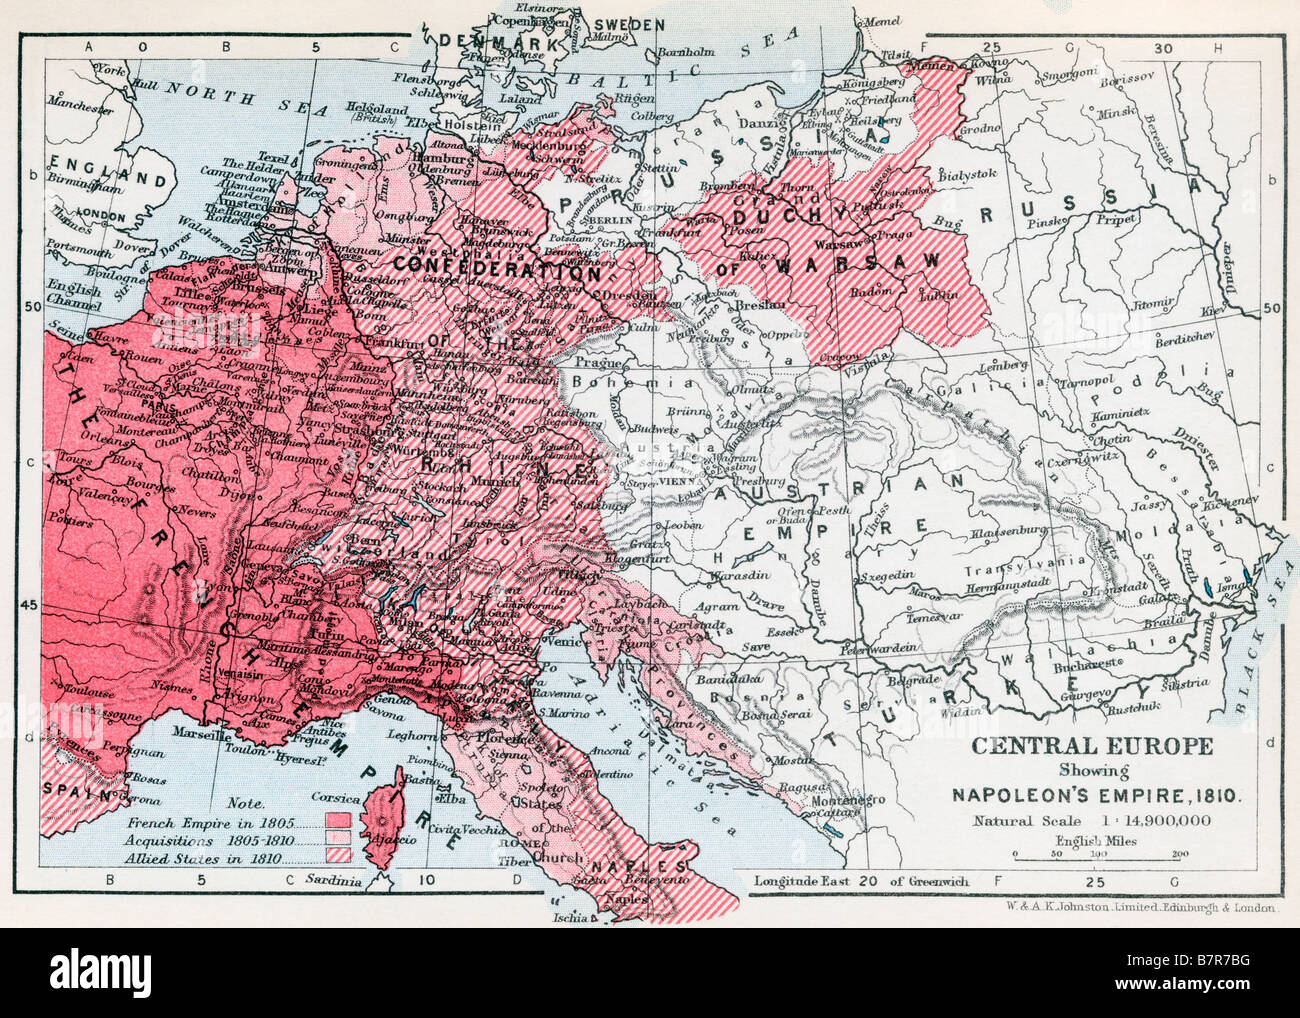 Map Of Central Europe Showing Napoleon S Empire 1810 Stock Photo